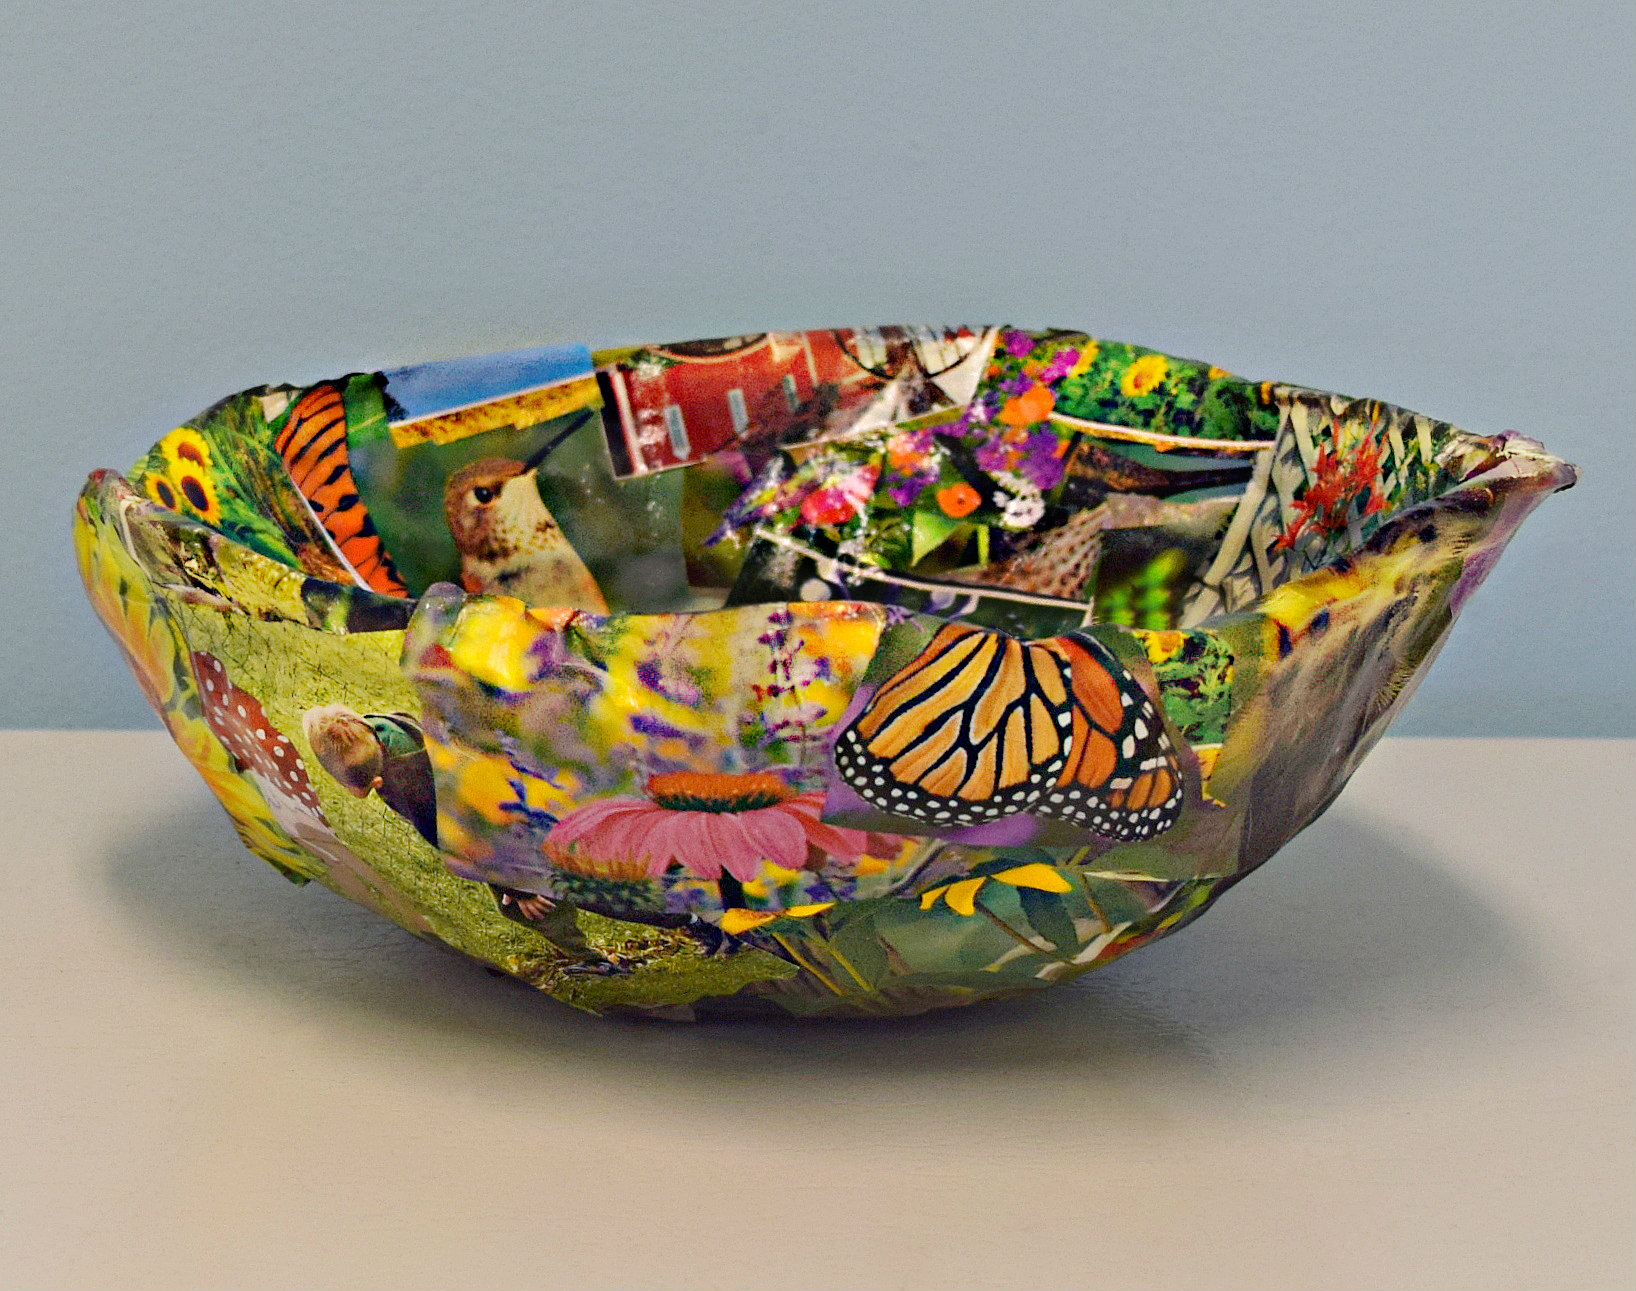 Life of Art Susan Nevers Paper Mache Bowl 11 inches x 3.5 inches